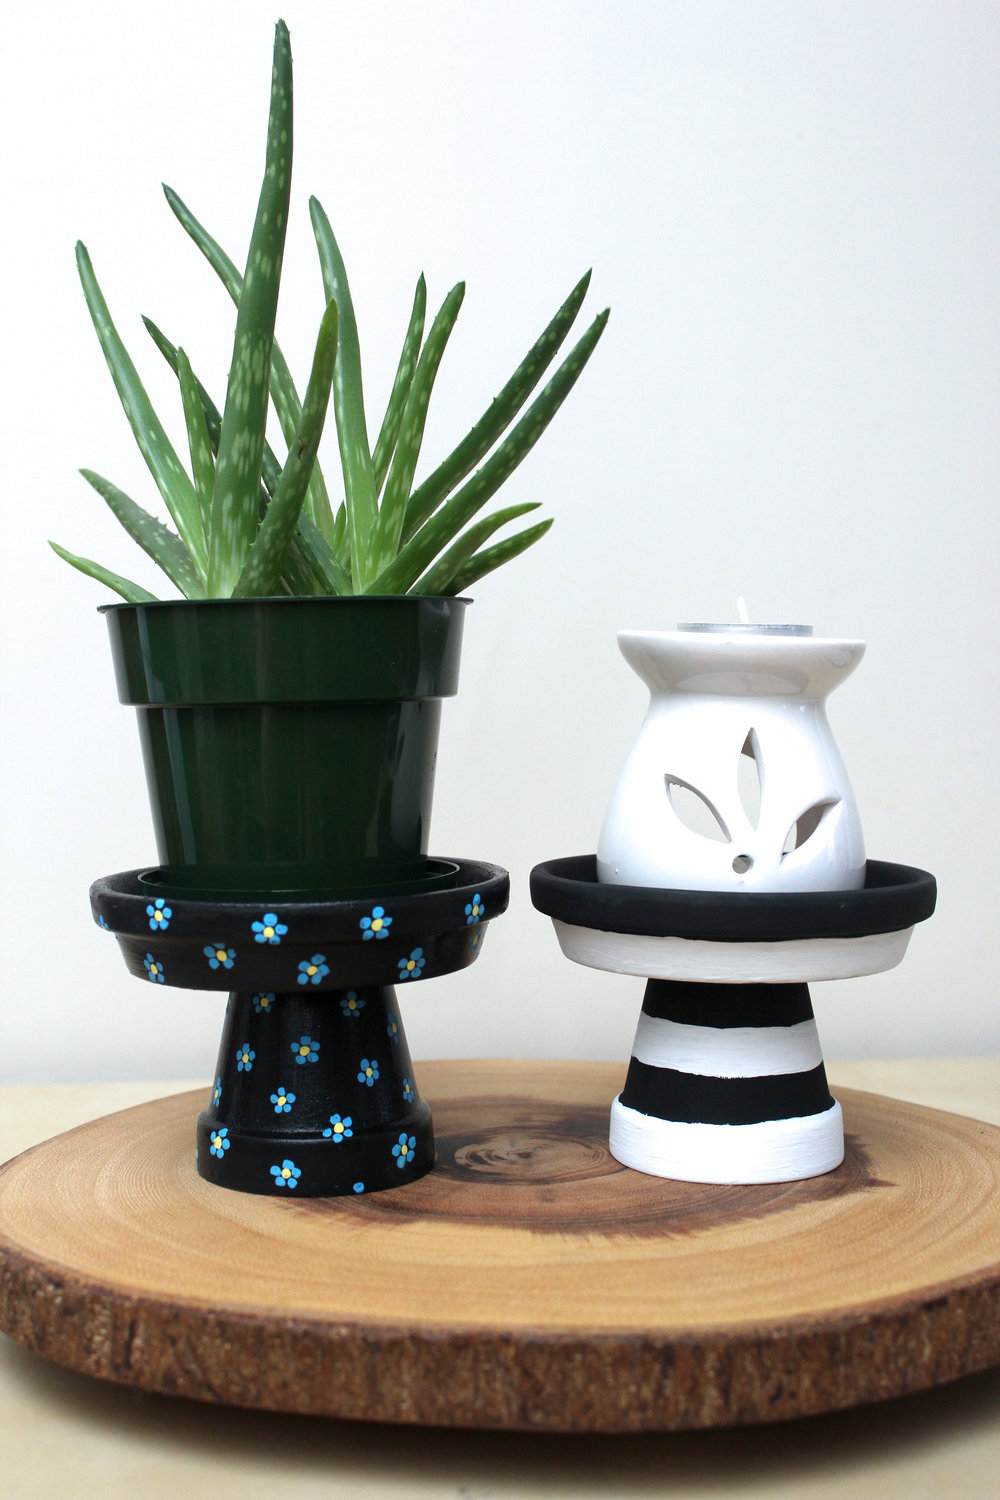 diy plant holders with clay pots.jpg